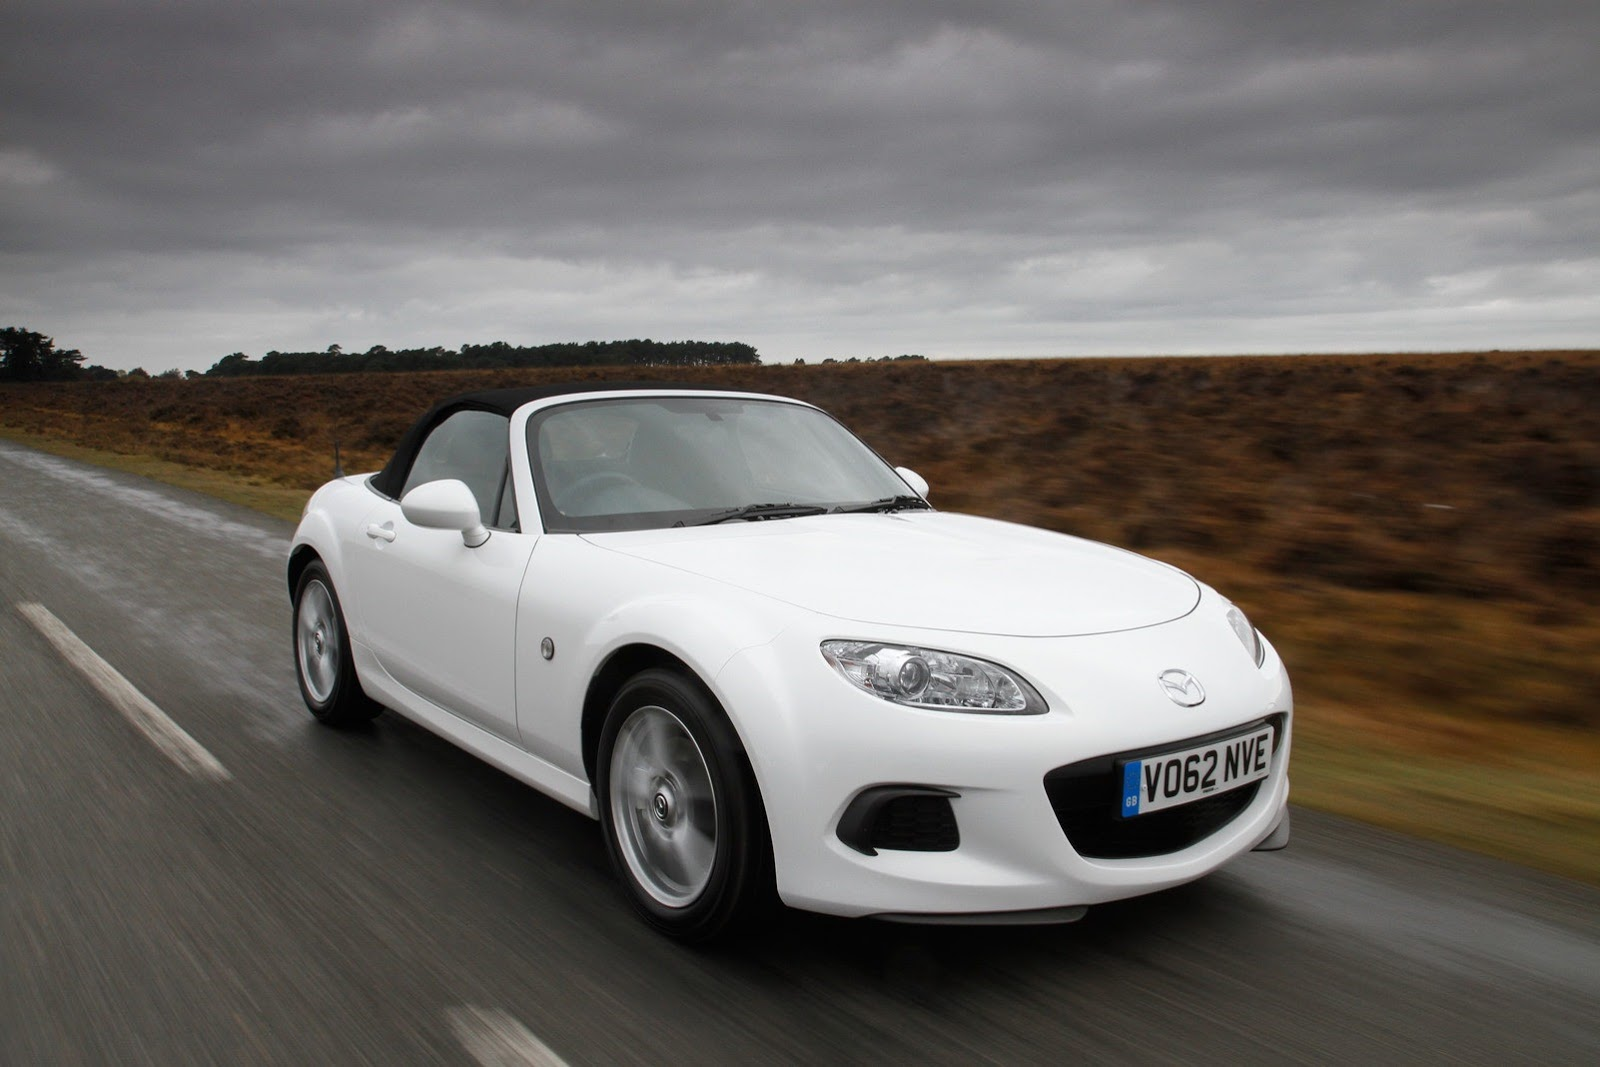 2013 Mazda MX-5 priced from 18,495 in the United Kingdom